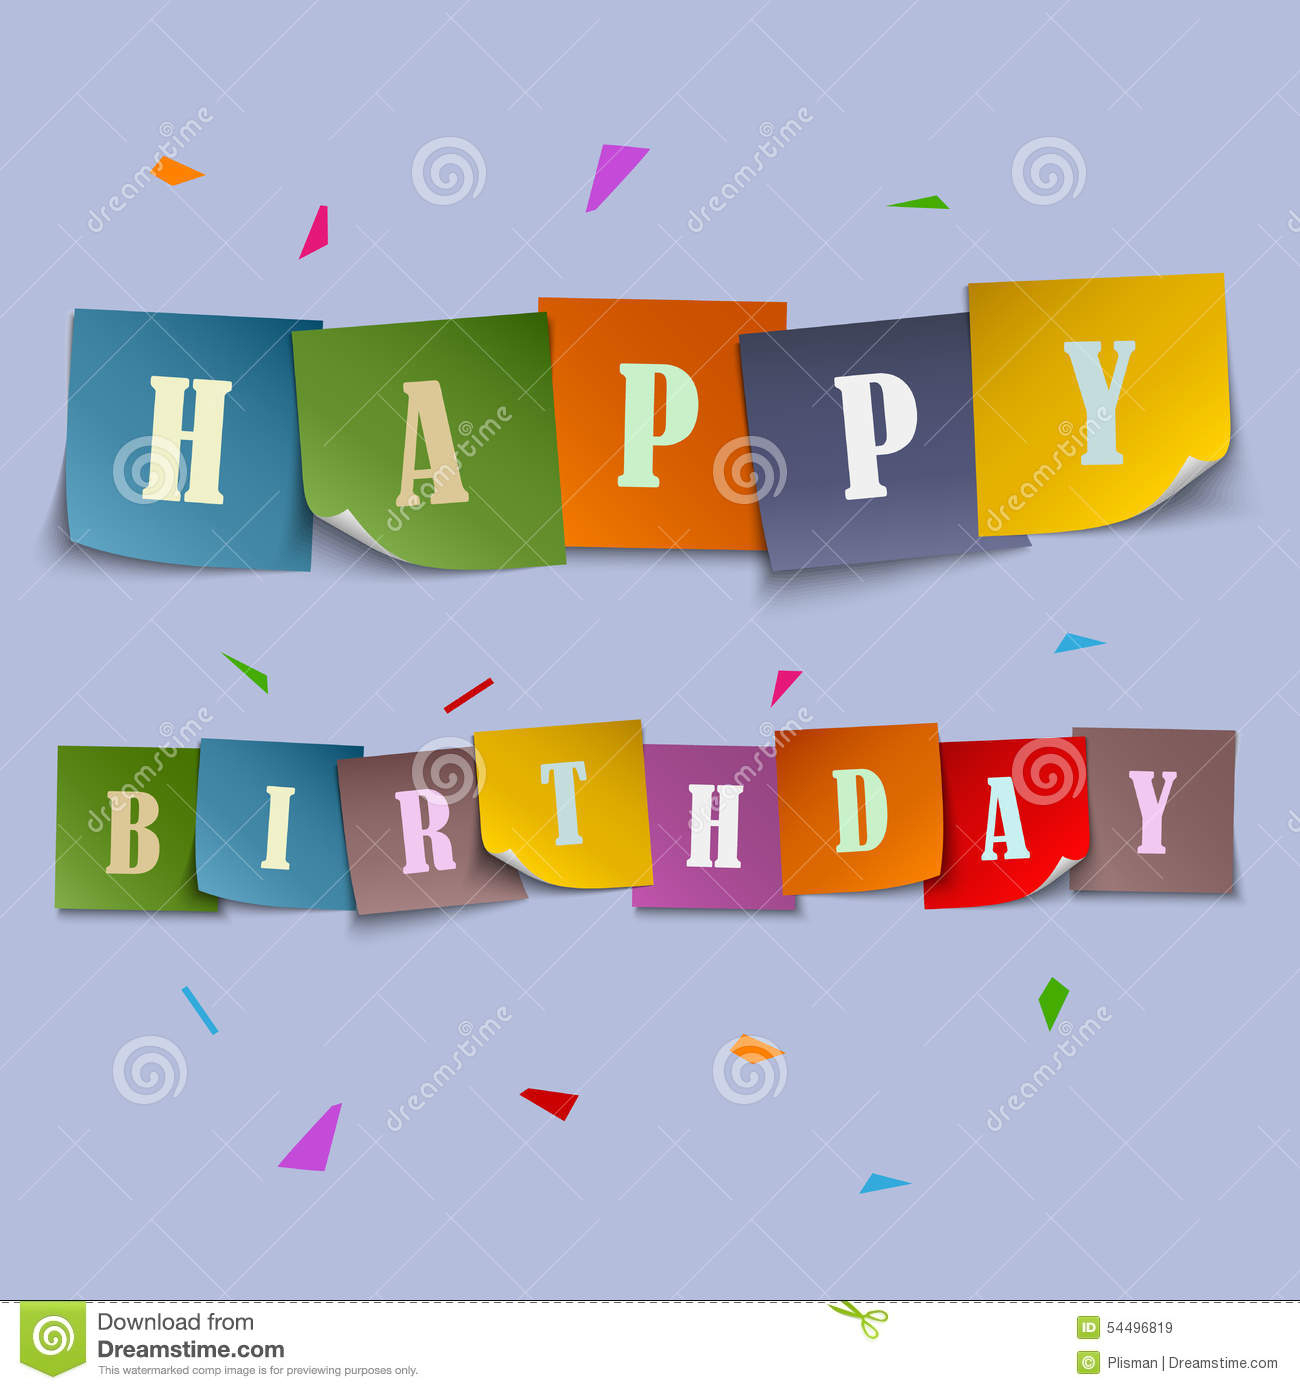 stickers of birthday wishes ; happy-birthday-card-with-colored-stickers-template-stock-vector-detail-stickers-for-birthday-cards